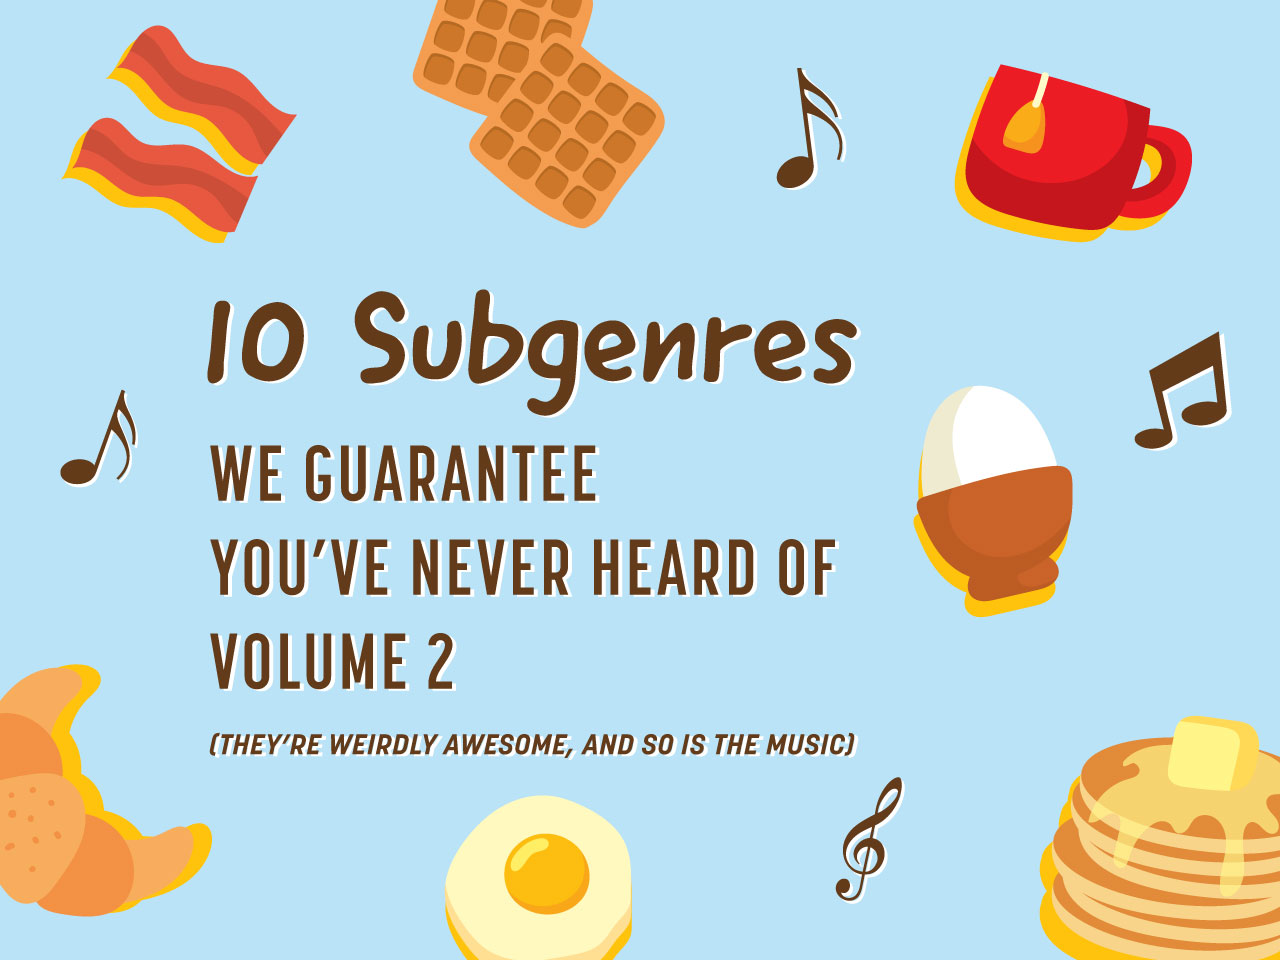 10 Subgenres We Guarantee You've Never Heard Of – Volume 2